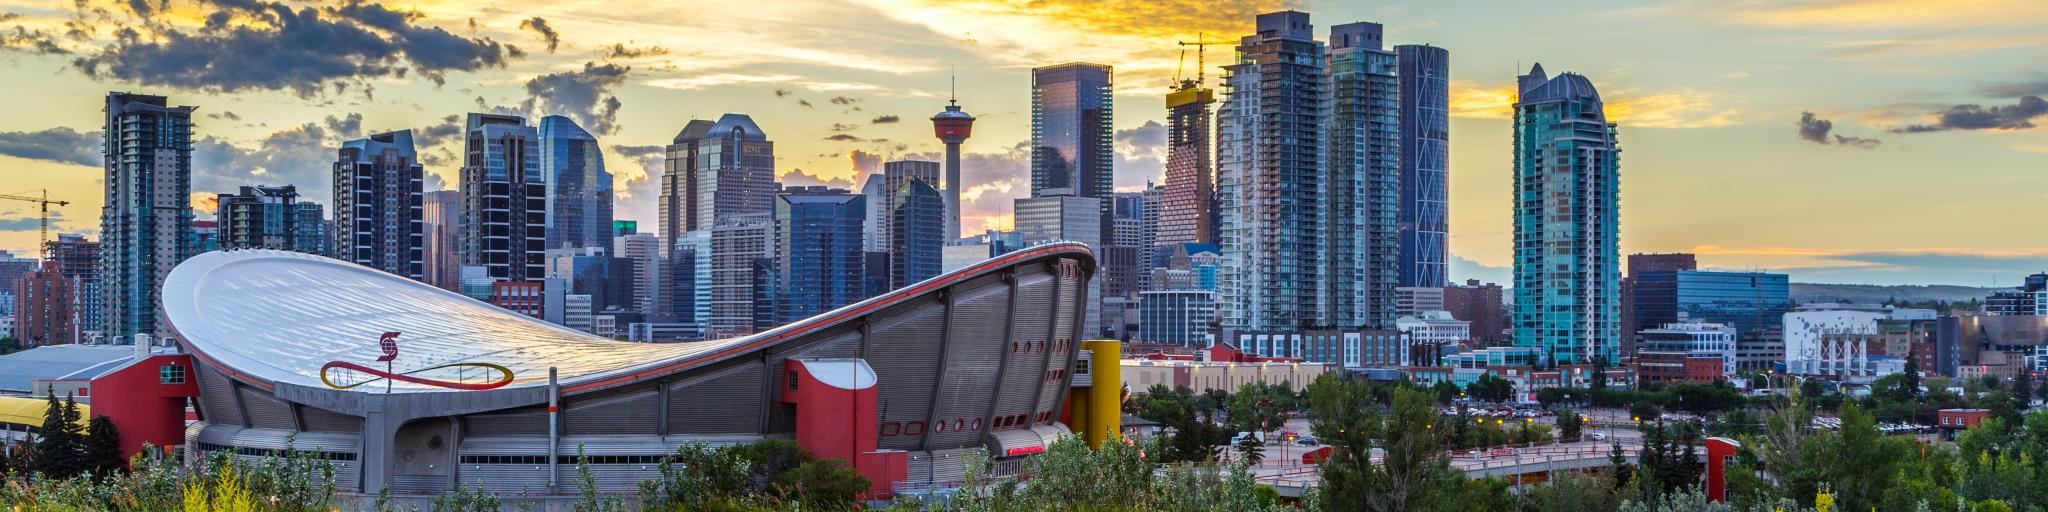 Sunset view of downtown Calgary.